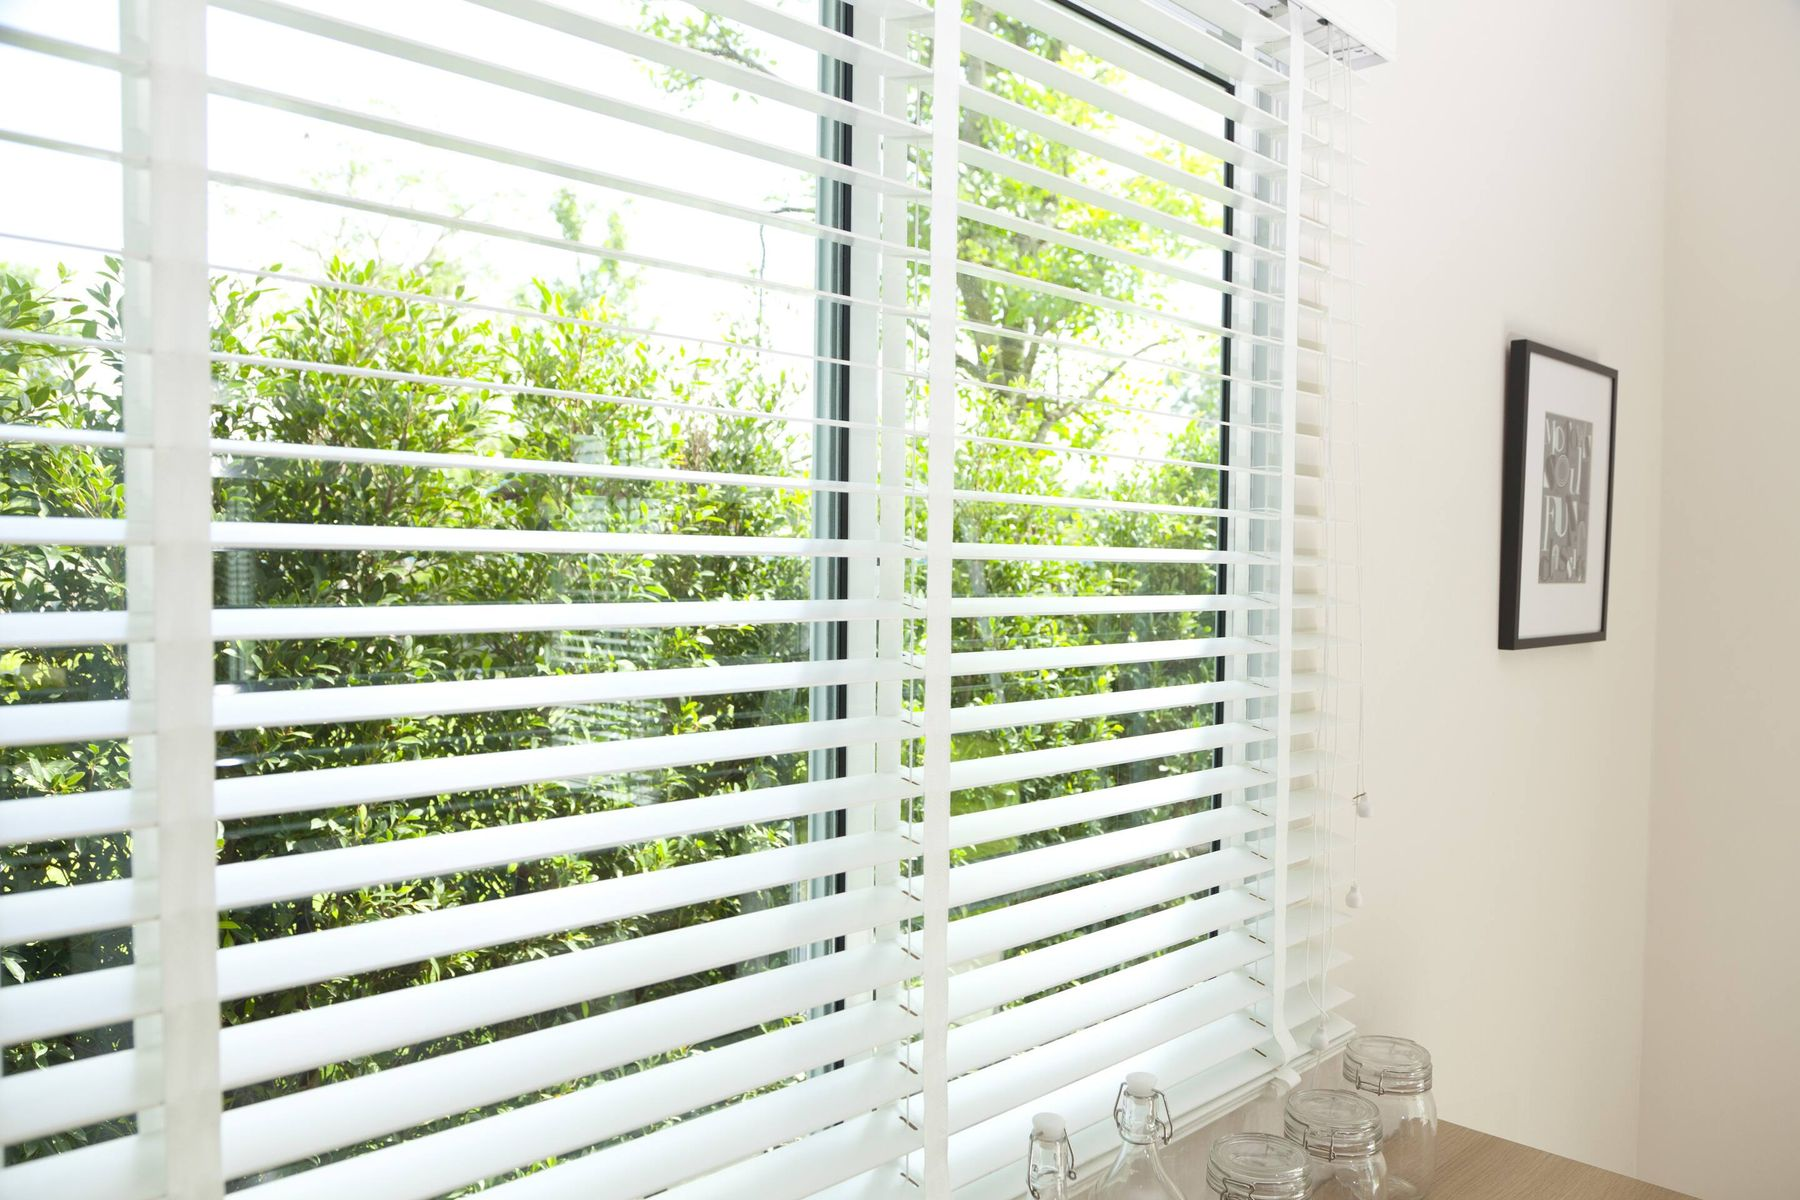 How To Clean Venetian Blinds Cleanipedia